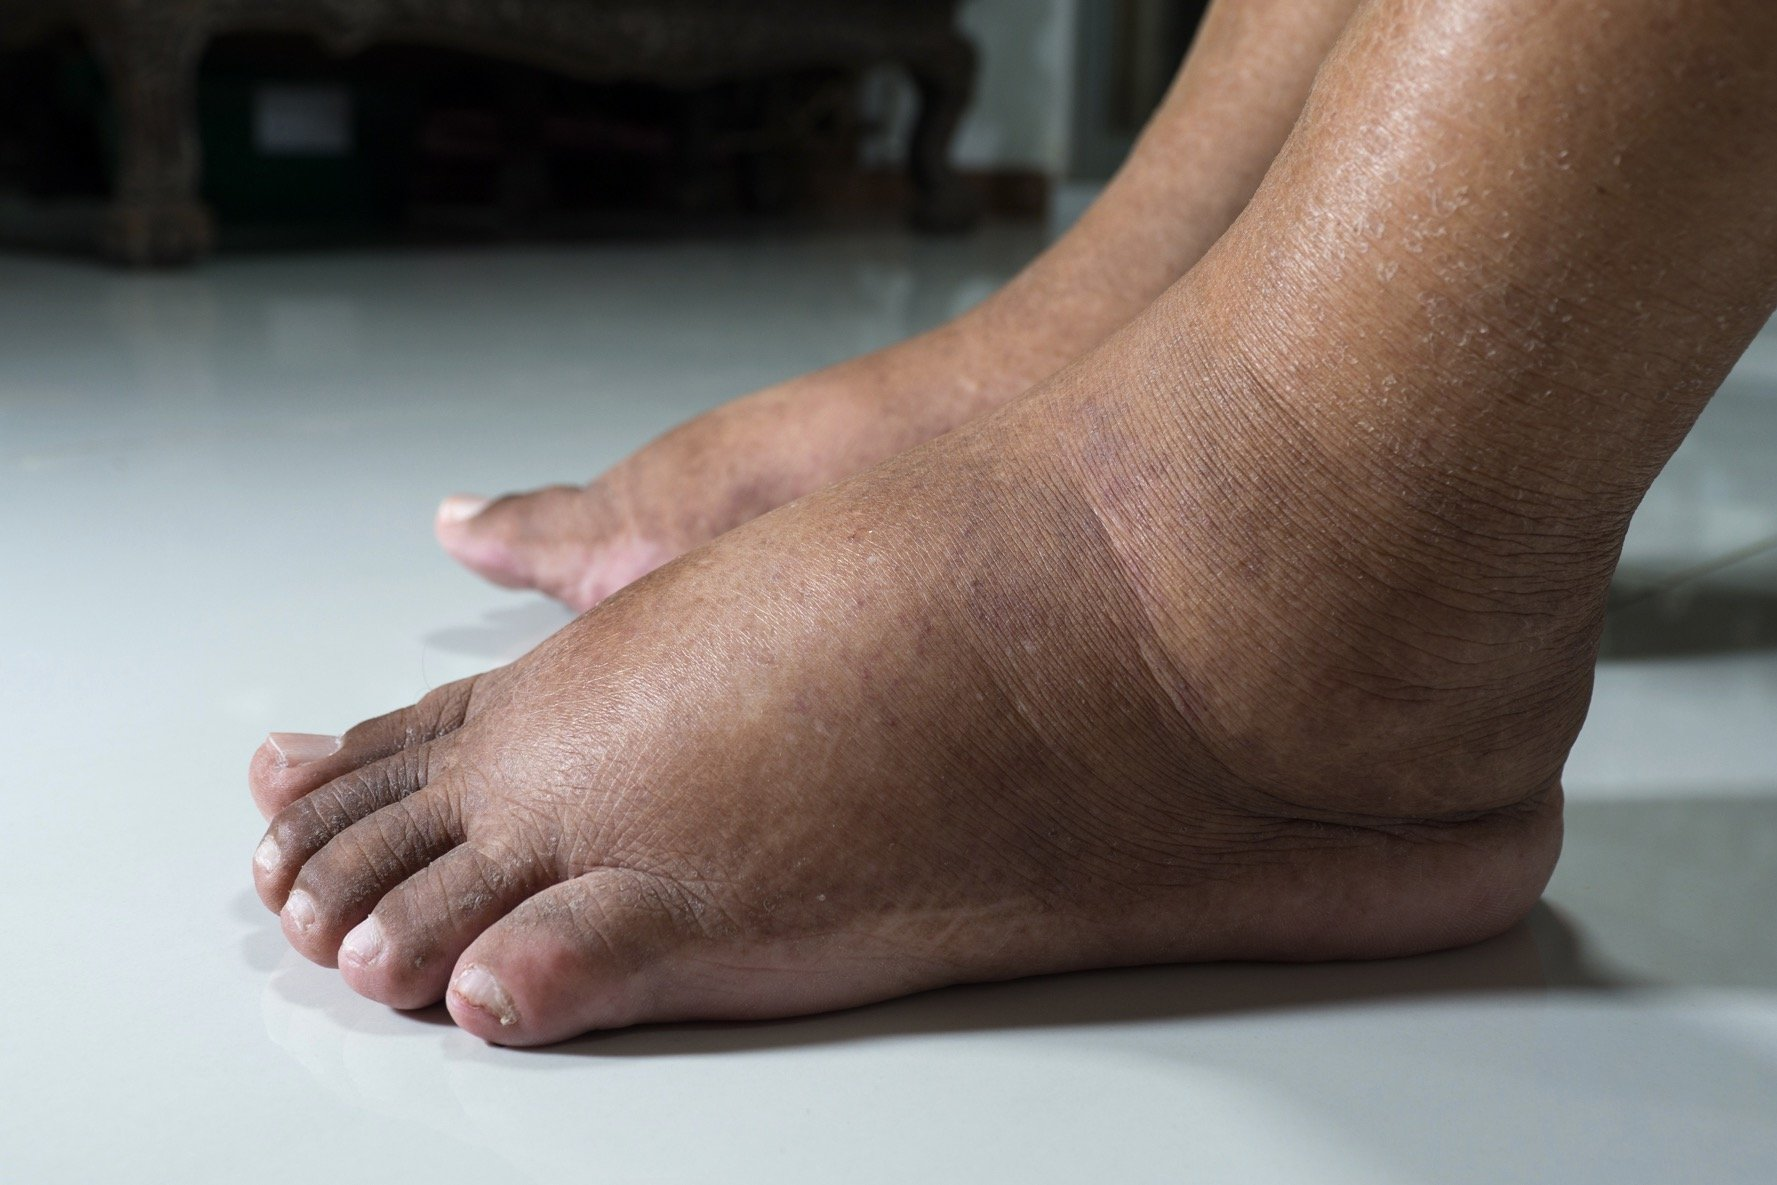 Person with swollen feet suffering from diabetes mellitus